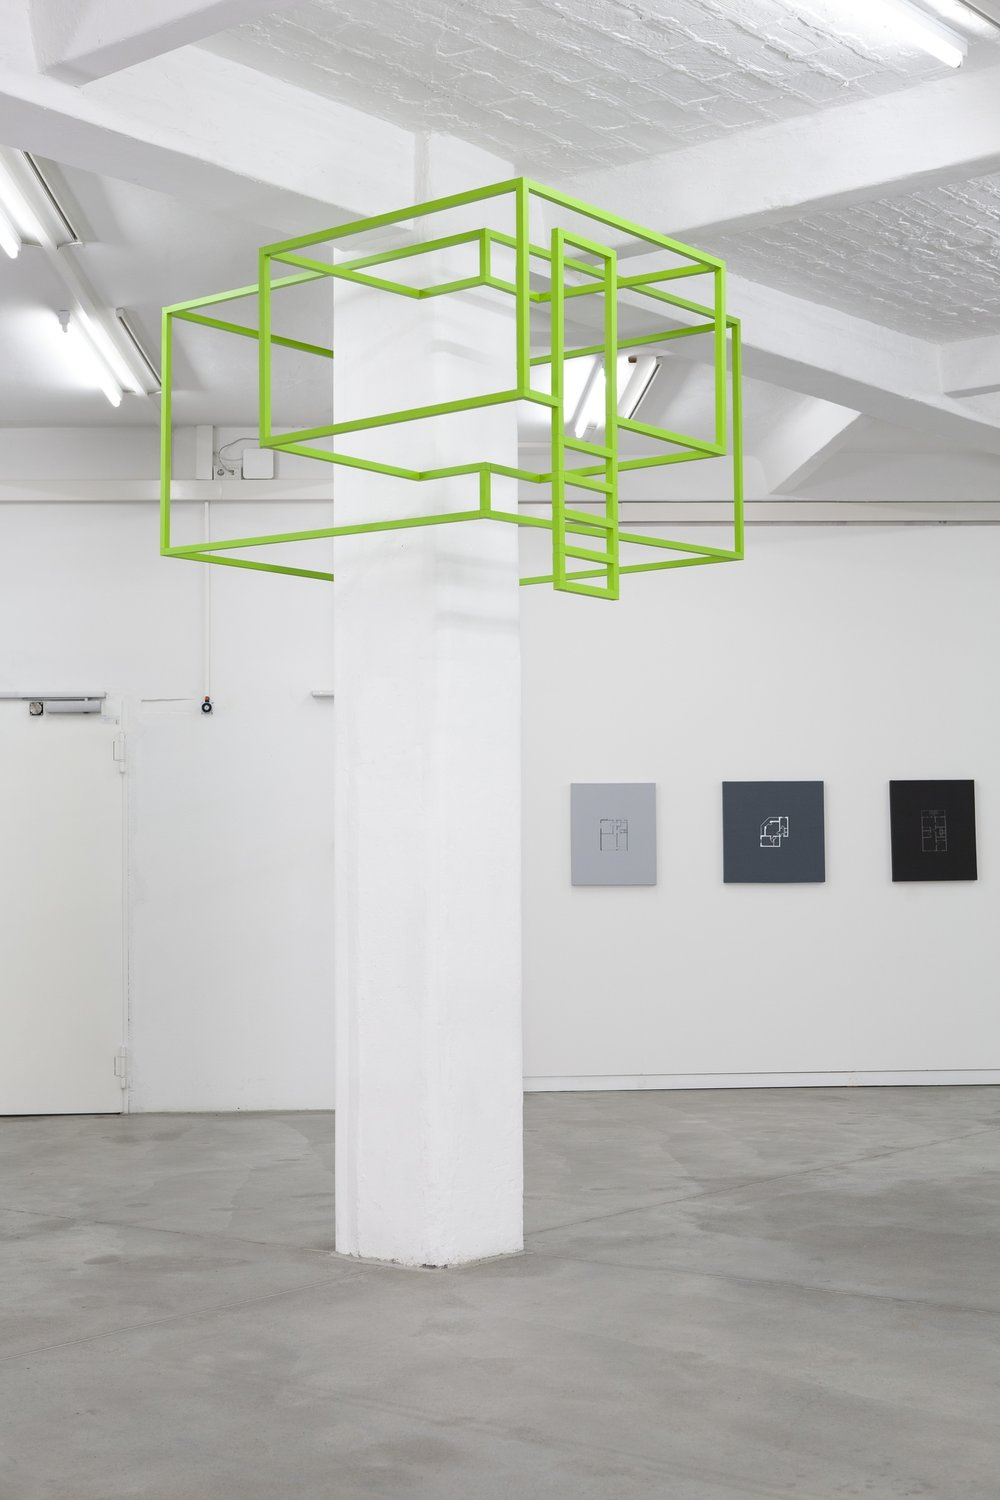 "Installation view at ""Some Detours: Michael Lee"", 2013, Künstlerhaus Bethanien, Berlin, Germany: AROUND PILLAR: Michael Lee, Skeletal Retreat No. 1, 2013, emulsion and aluminium hollow section, 125 x 230 x 235 cm, Ed. 1 / 3 + 1 AP; ON WALL: Michael Lee, selections from the series ""Dwelling"", 2013, acrylic on canvas, various dimensions, photos by Ute Klein."